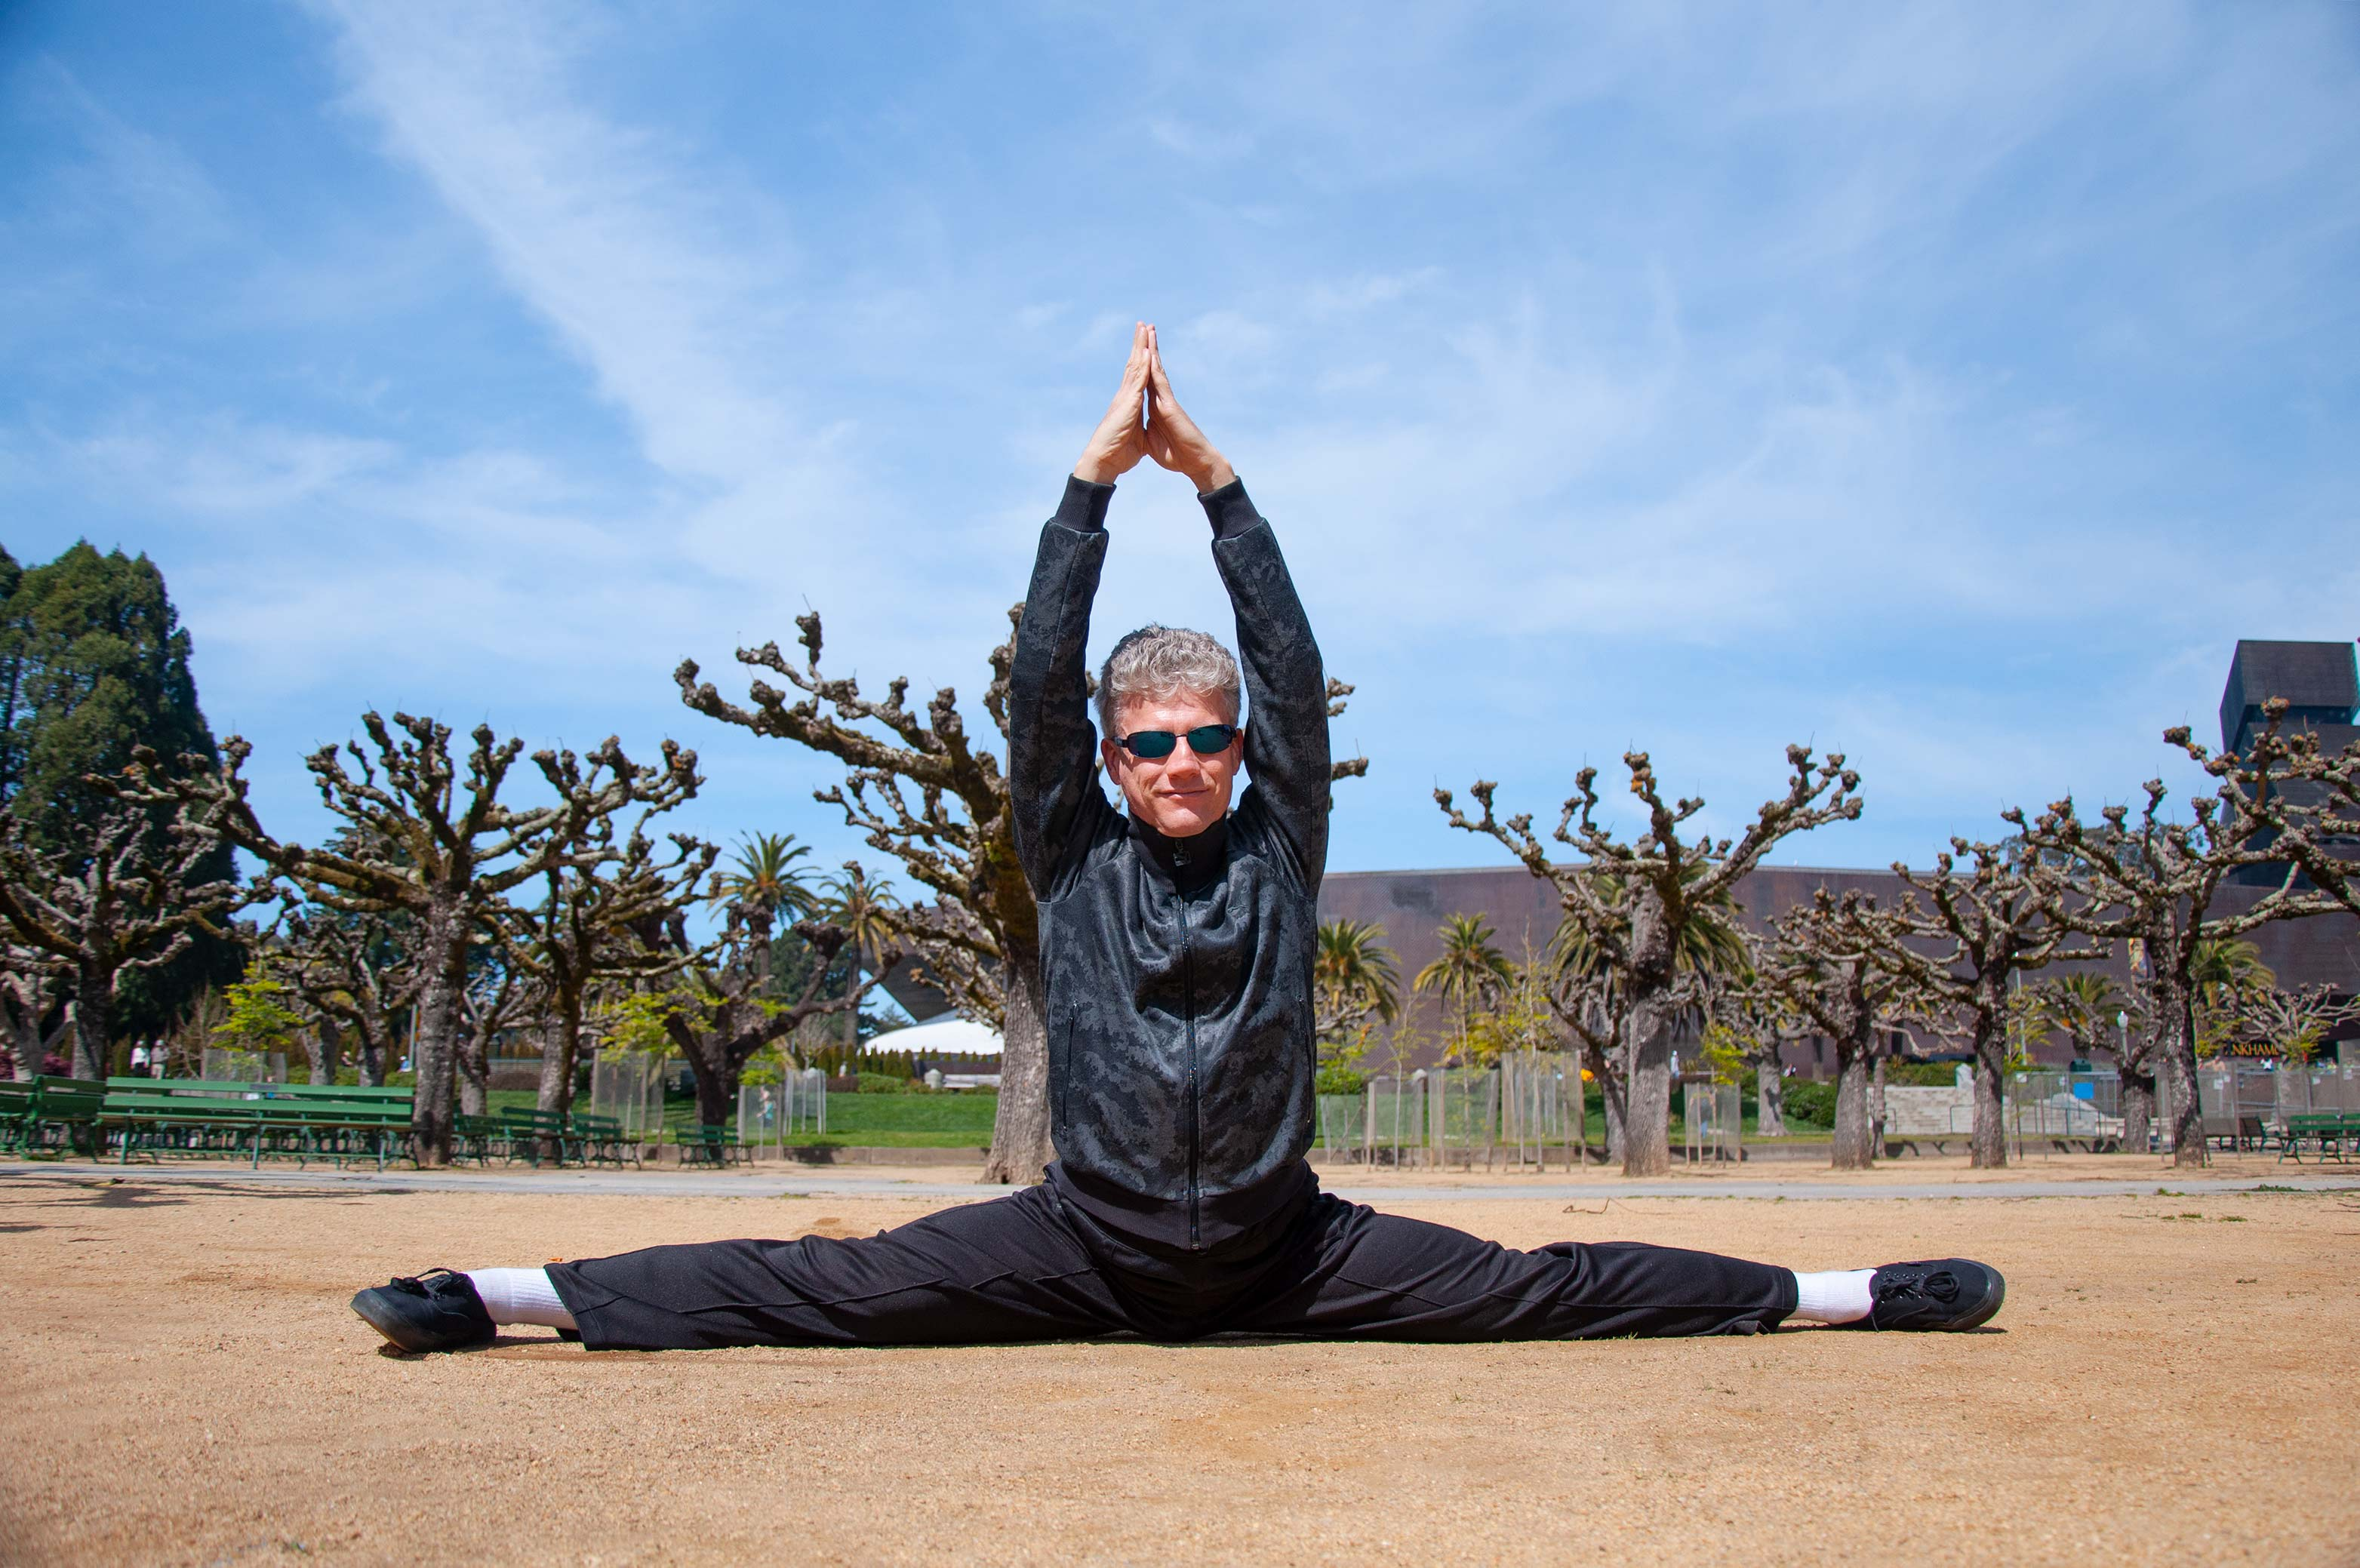 Sifu Scott Jensen demonstrating an amazing level of flexibility at Golden Gate Park, SF